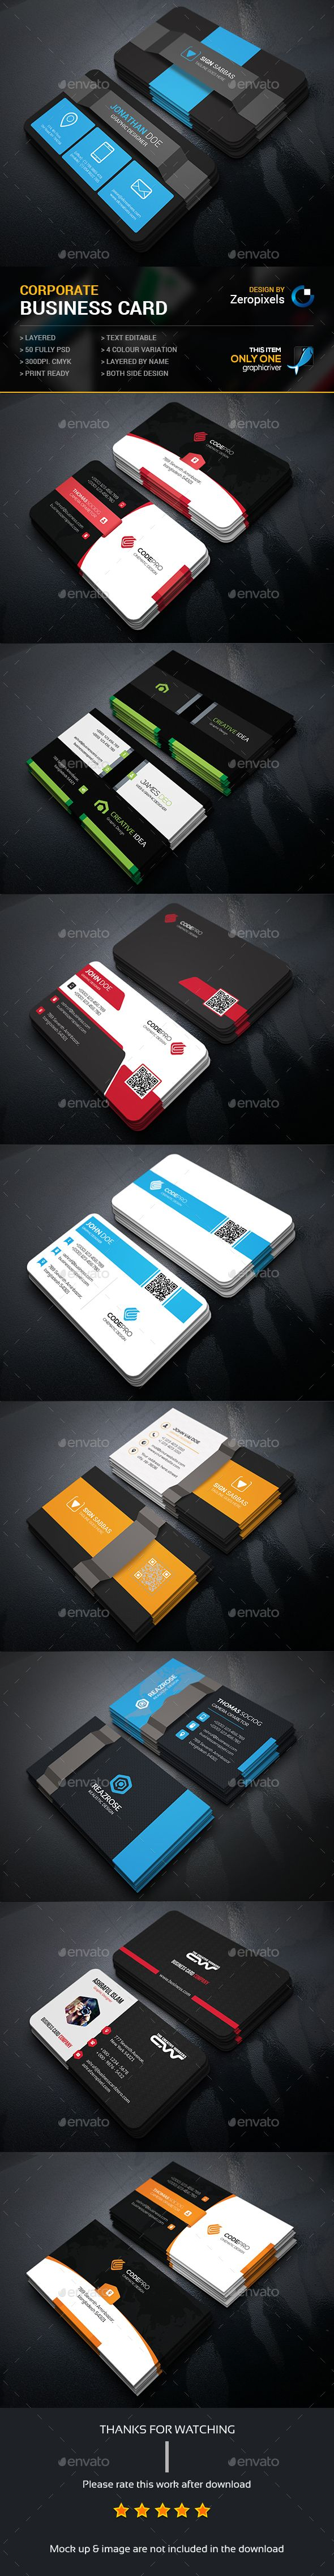 13 best business cards images on pinterest